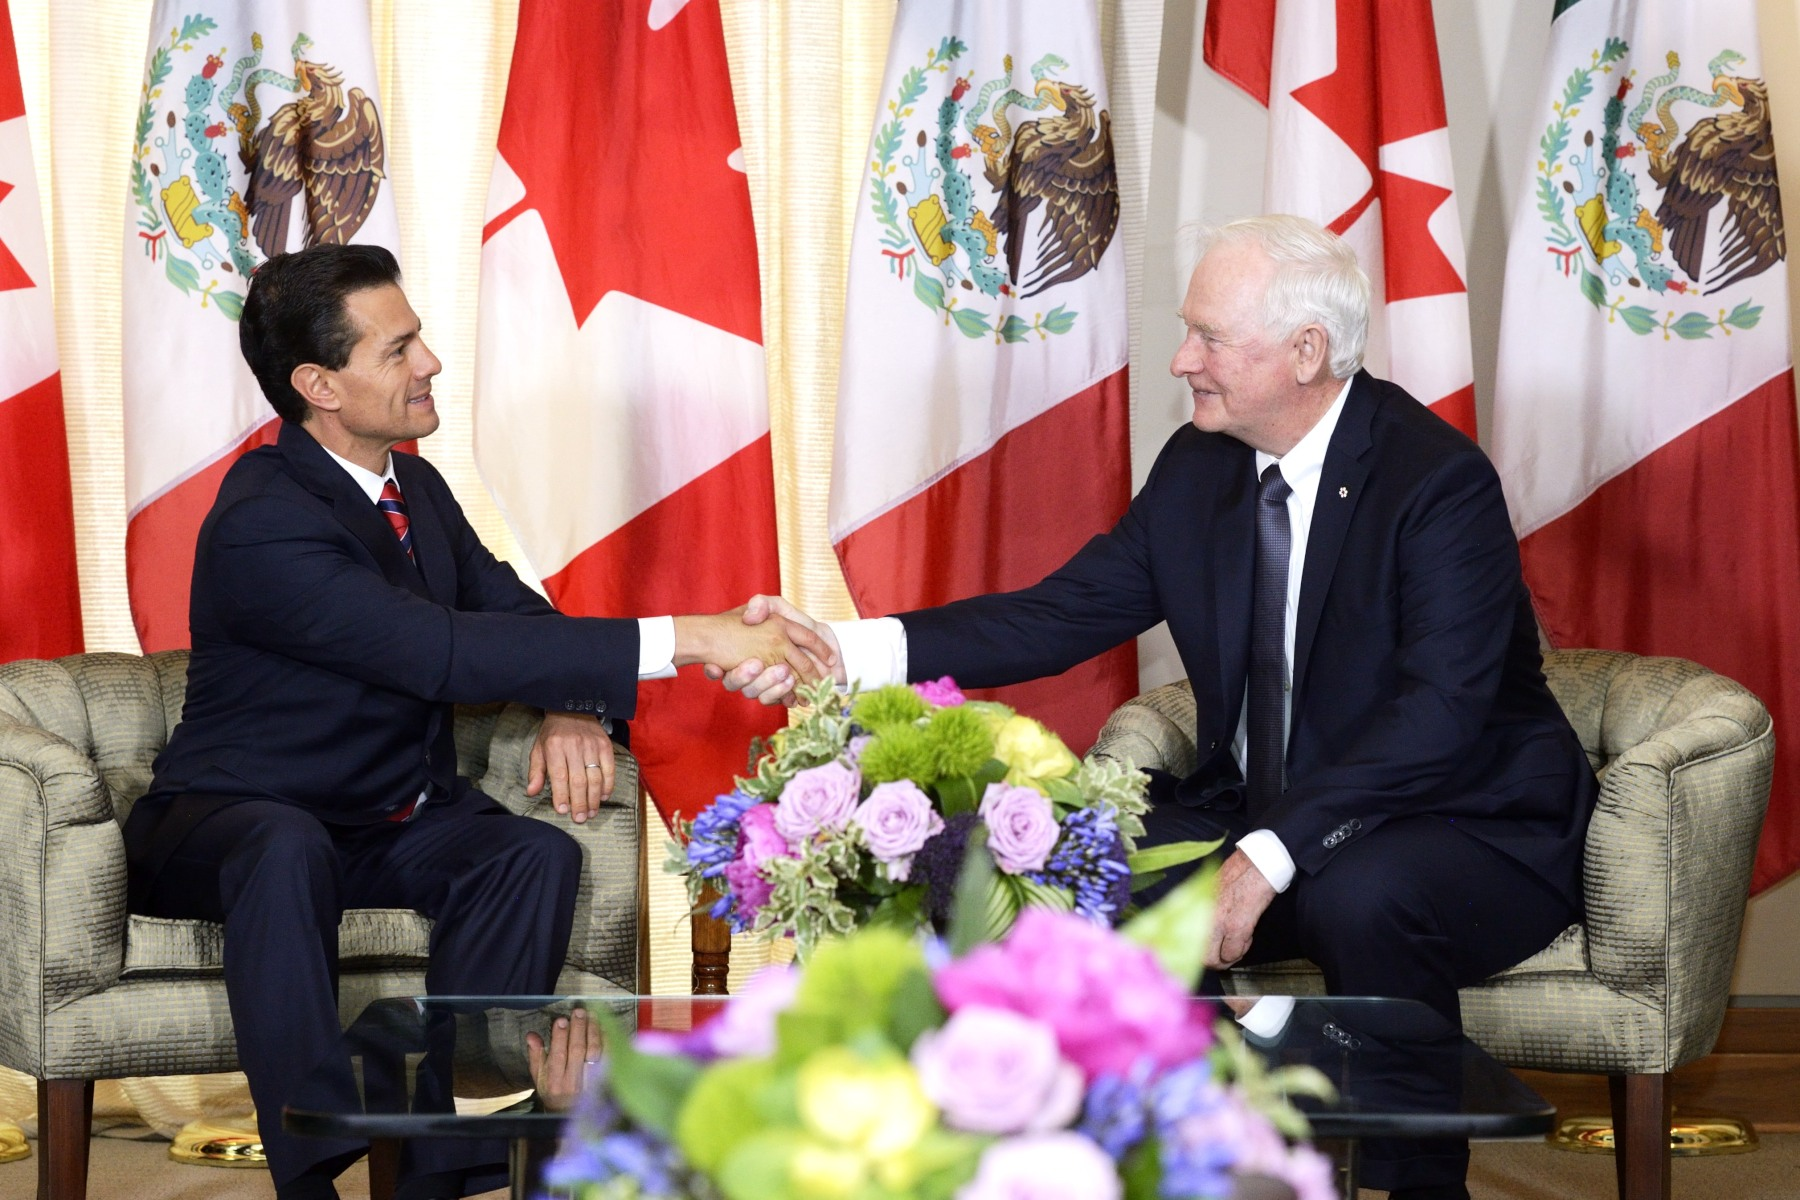 A meeting between the Governor General and the President of Mexico took place in the Salon des anges, Residence of the Governor General at the Citadelle of Québec.